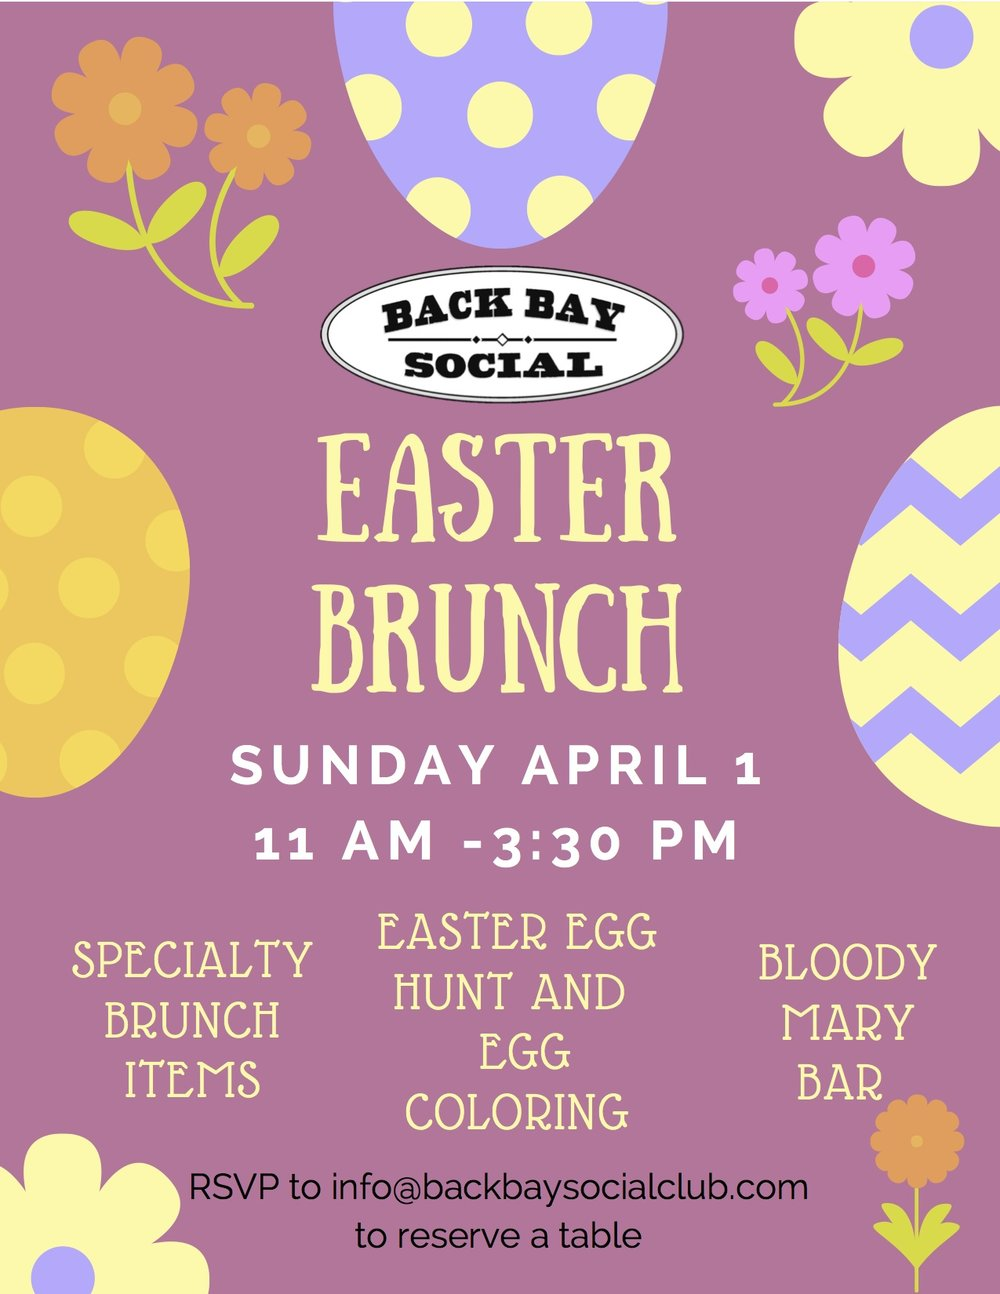 Easter Brunch Final Print  copy 2.jpg